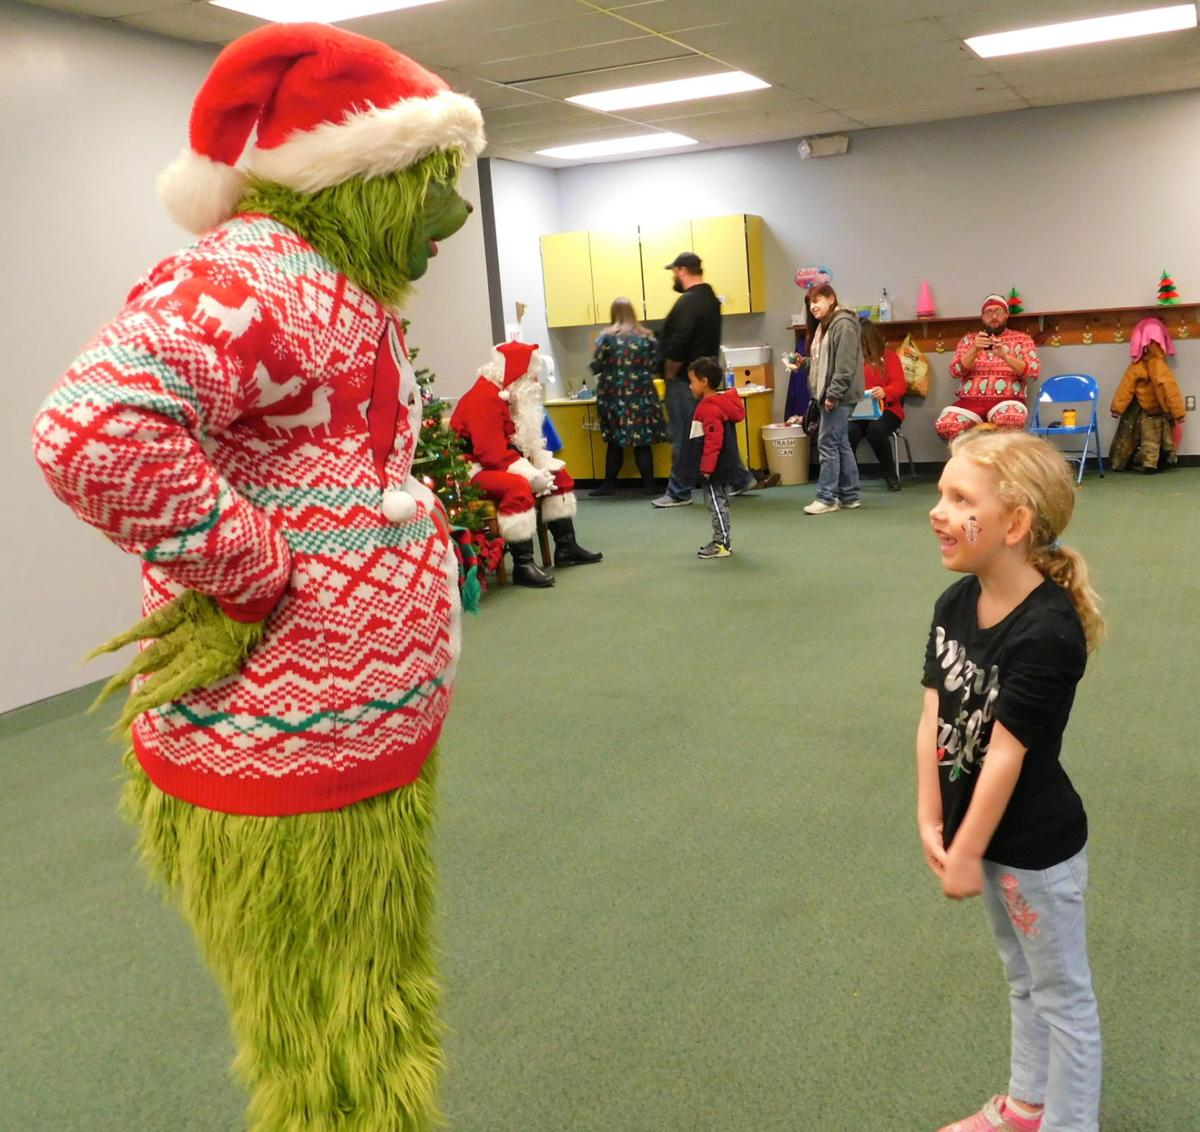 Talking to The Grinch